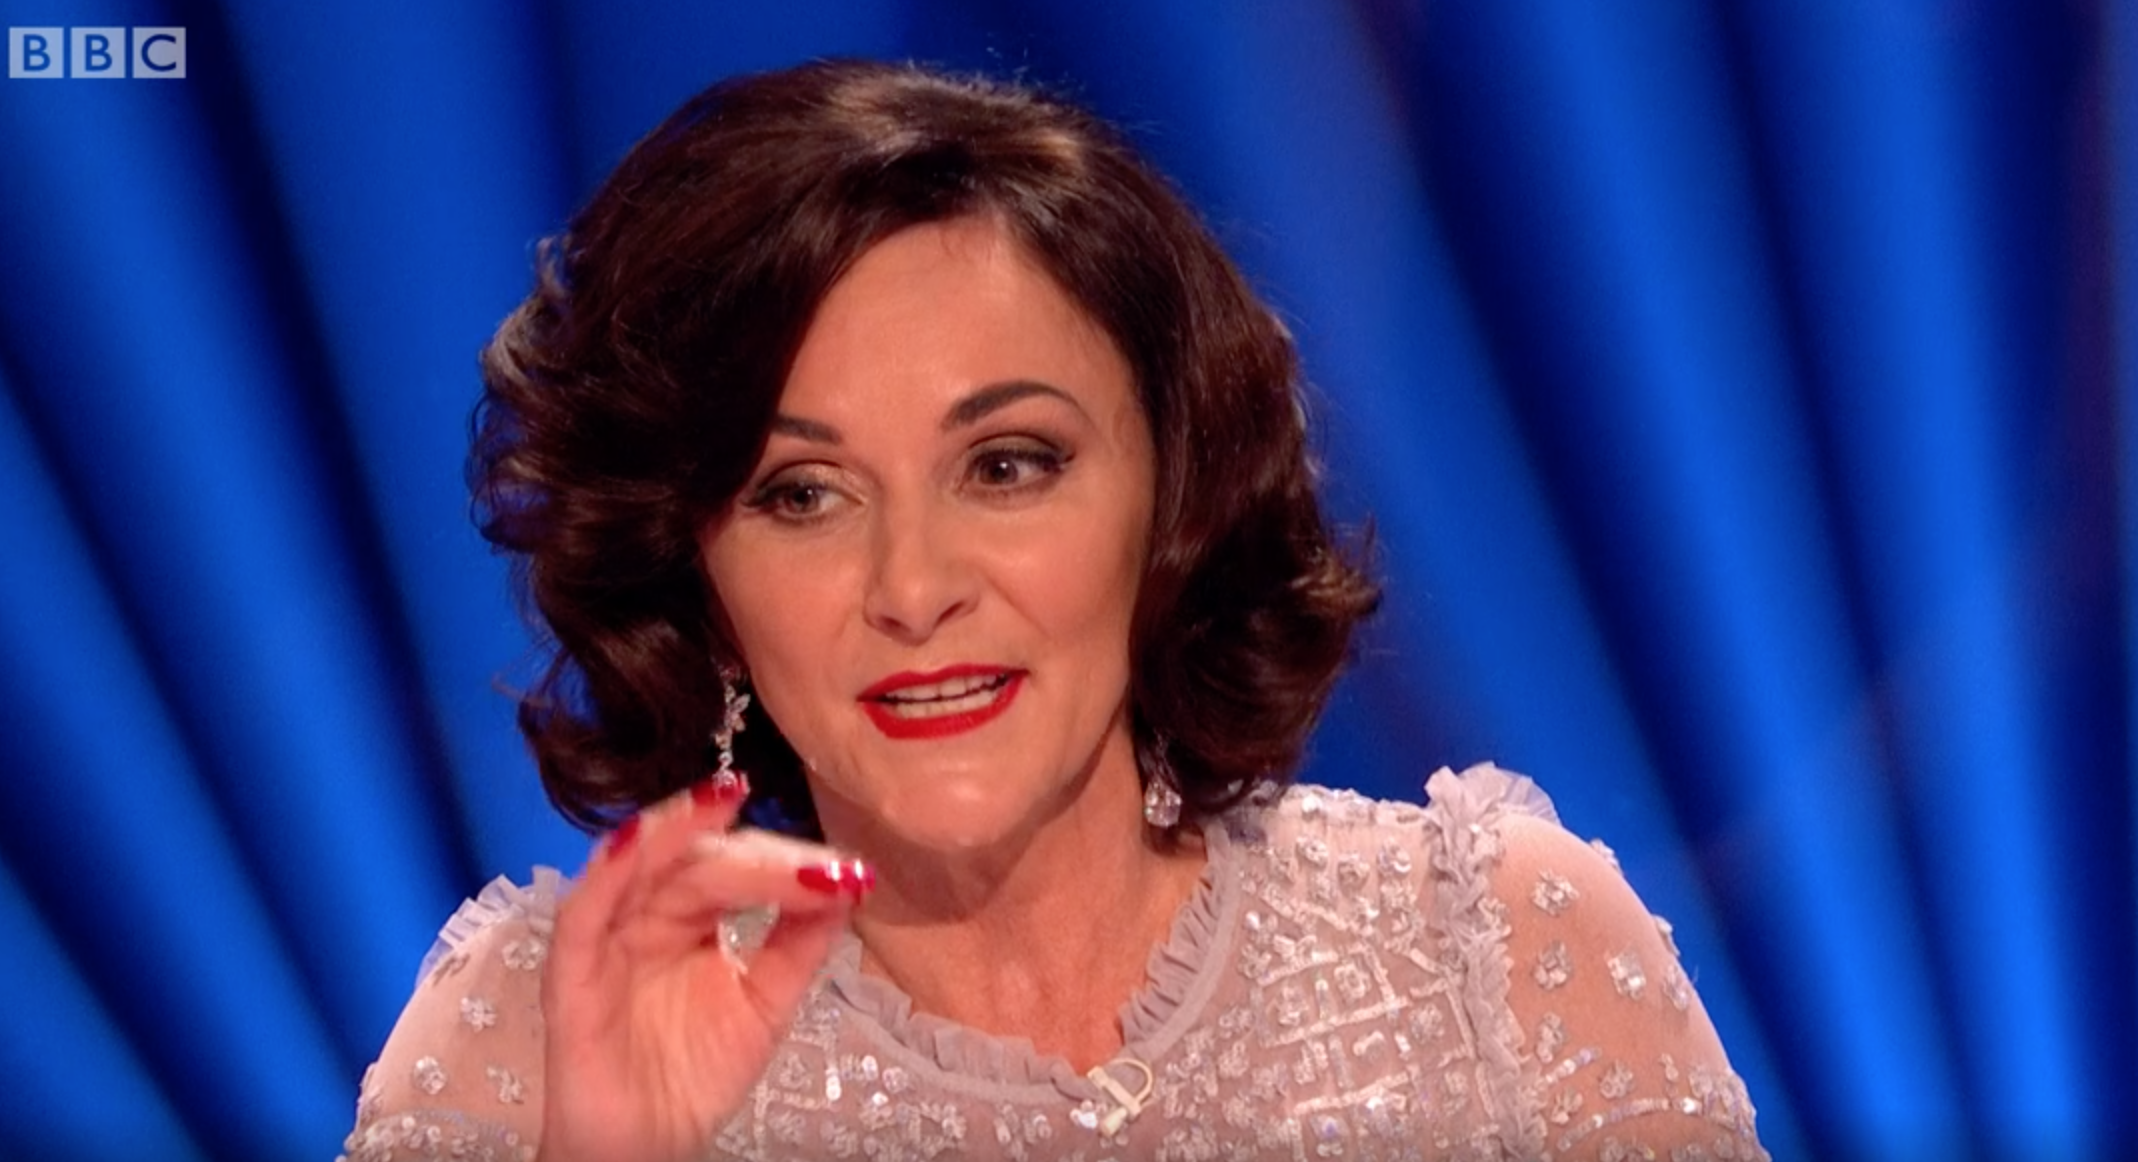 Strictly: Shirley Ballas blasted for praising EastEnders star Emma 'through gritted teeth'